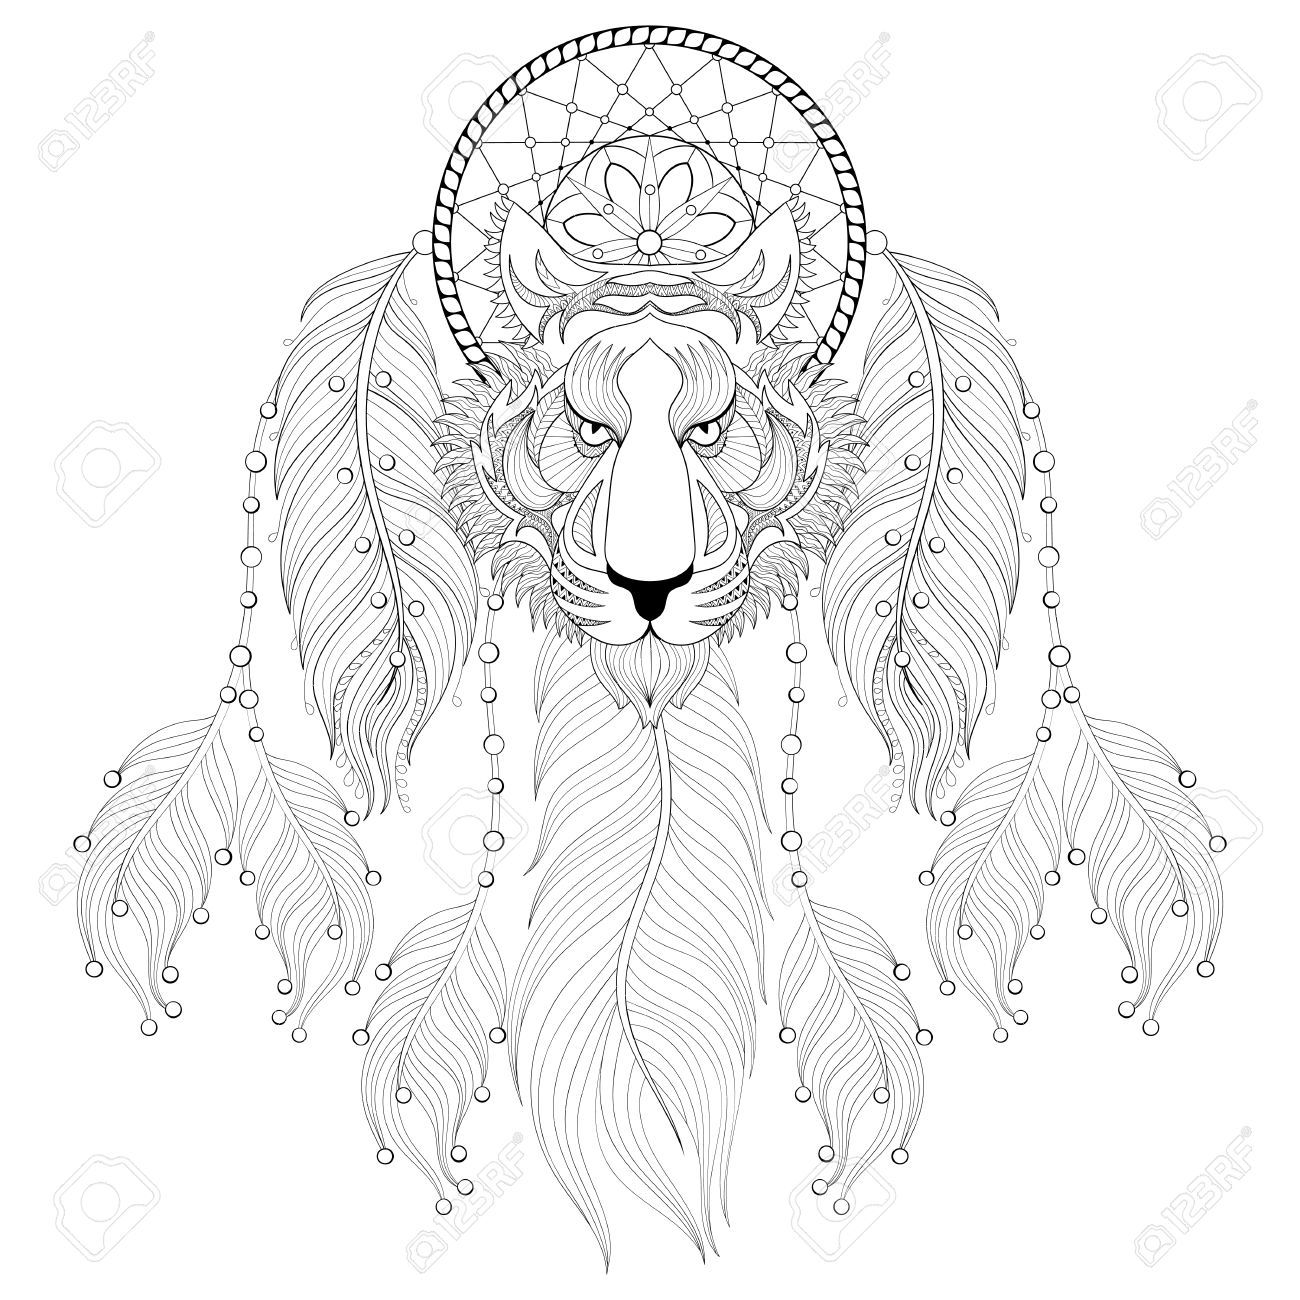 1300x1300 Appealing Dream Catcher Coloring Pages Bsta Bilderna Om